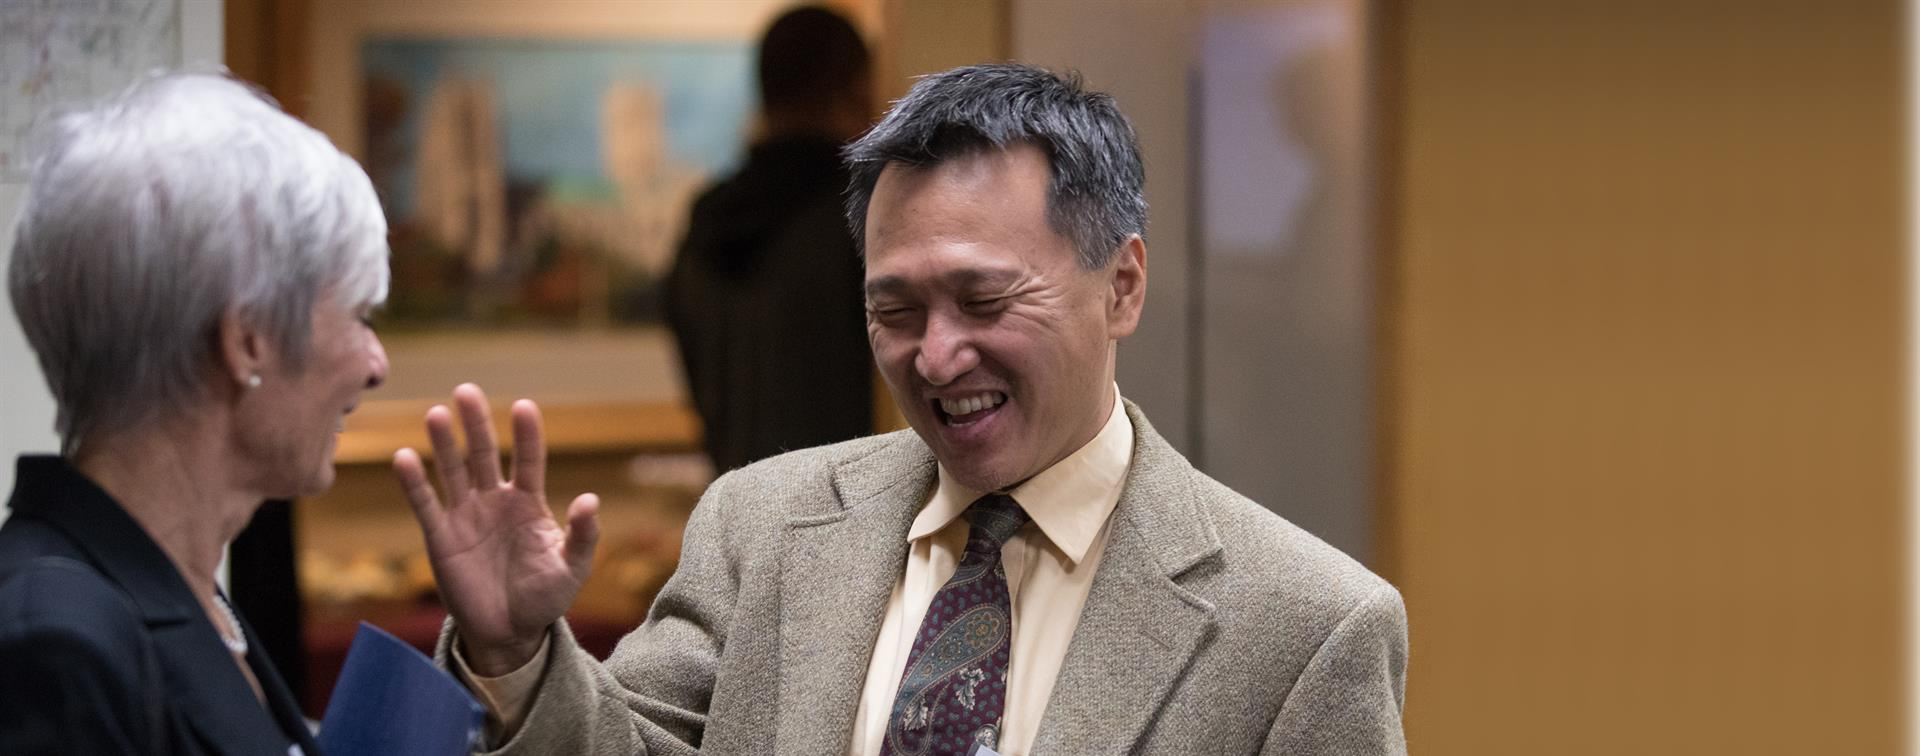 A picture of a man smiling and waving at the Internationalization Collaborative event